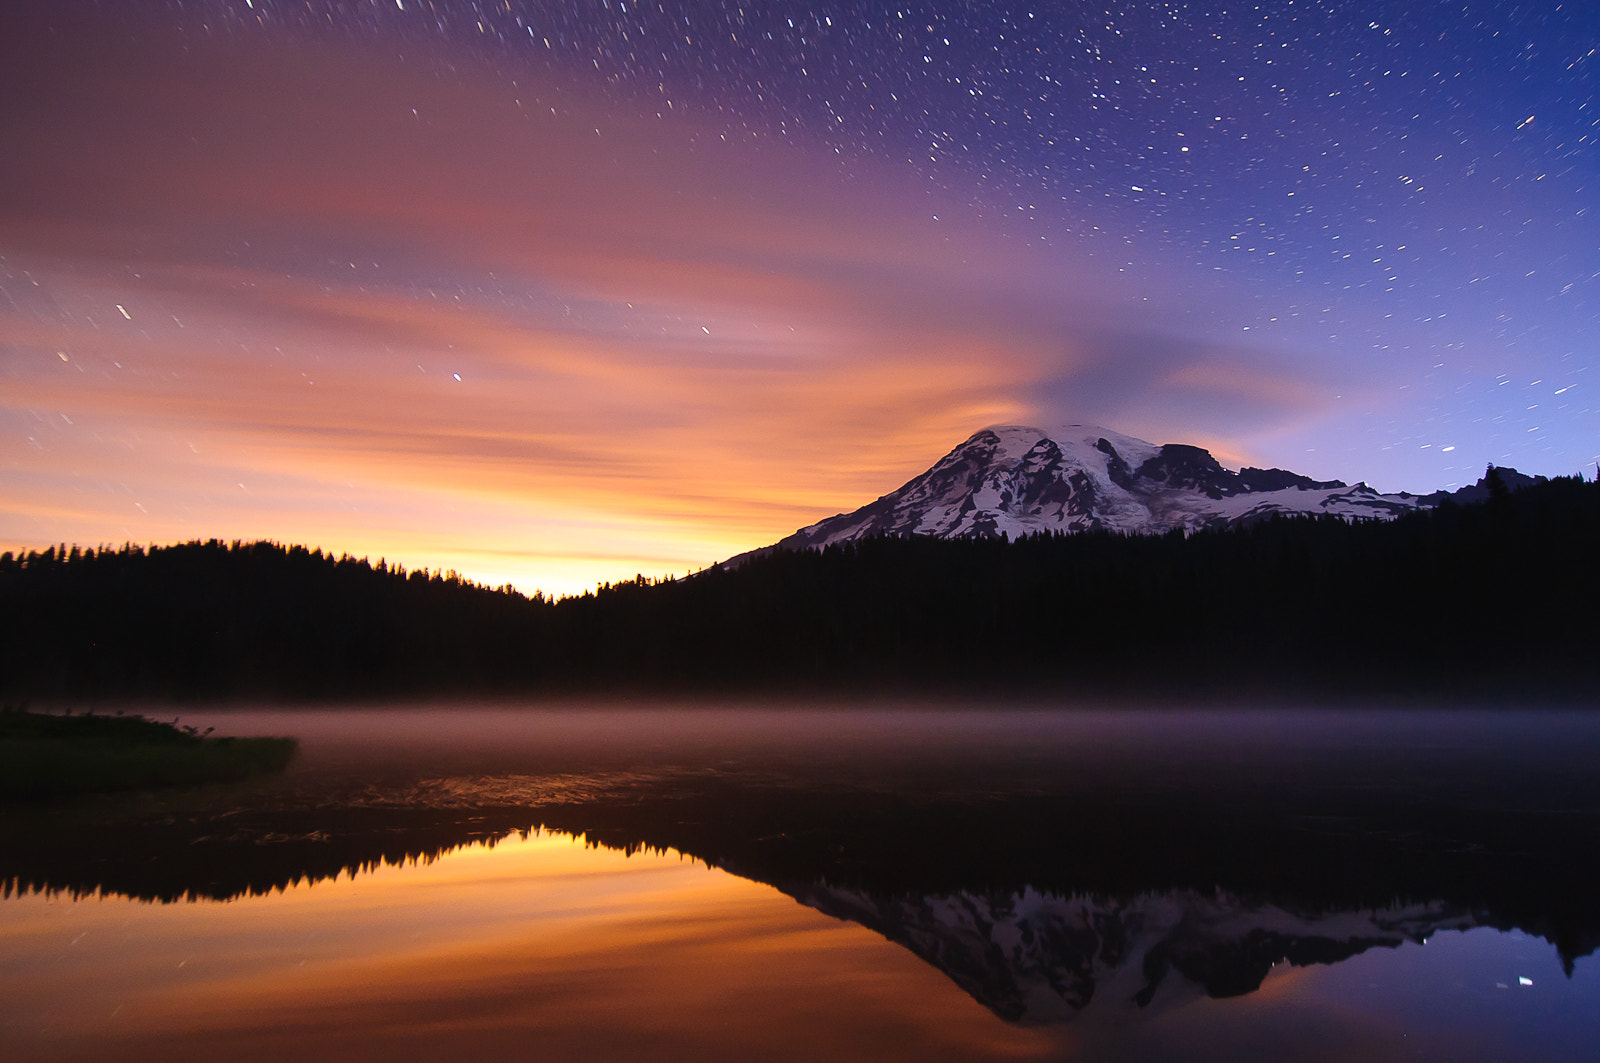 Photograph Heaven and Earth by Jay D. on 500px